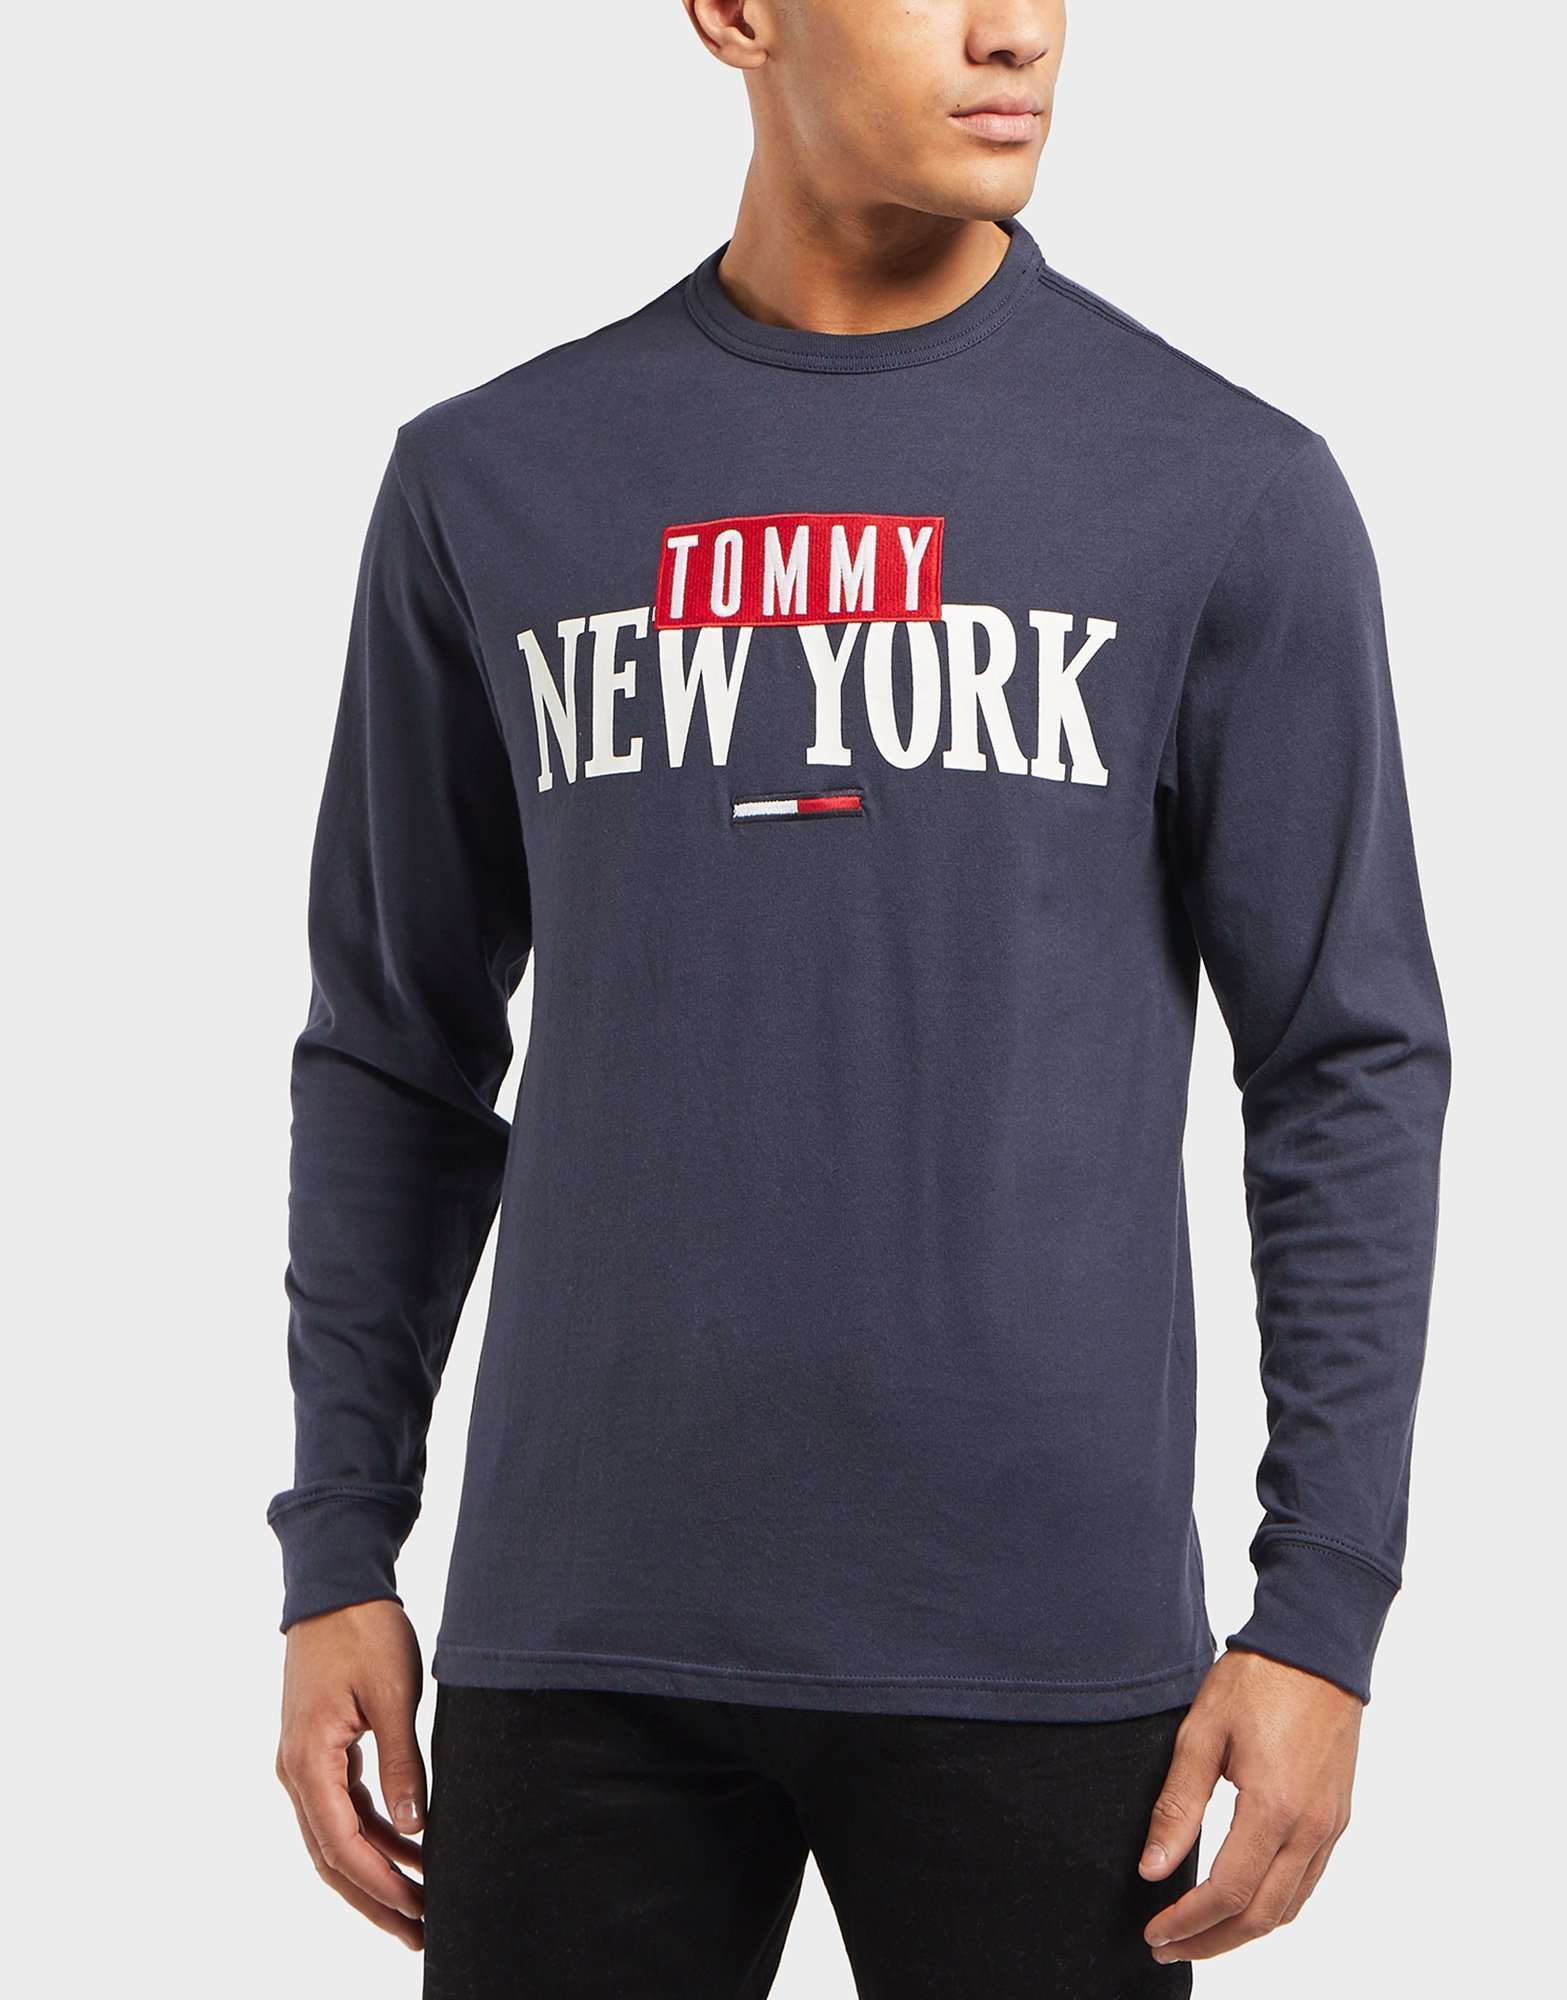 Tommy Jeans New York Long Sleeve T-Shirt